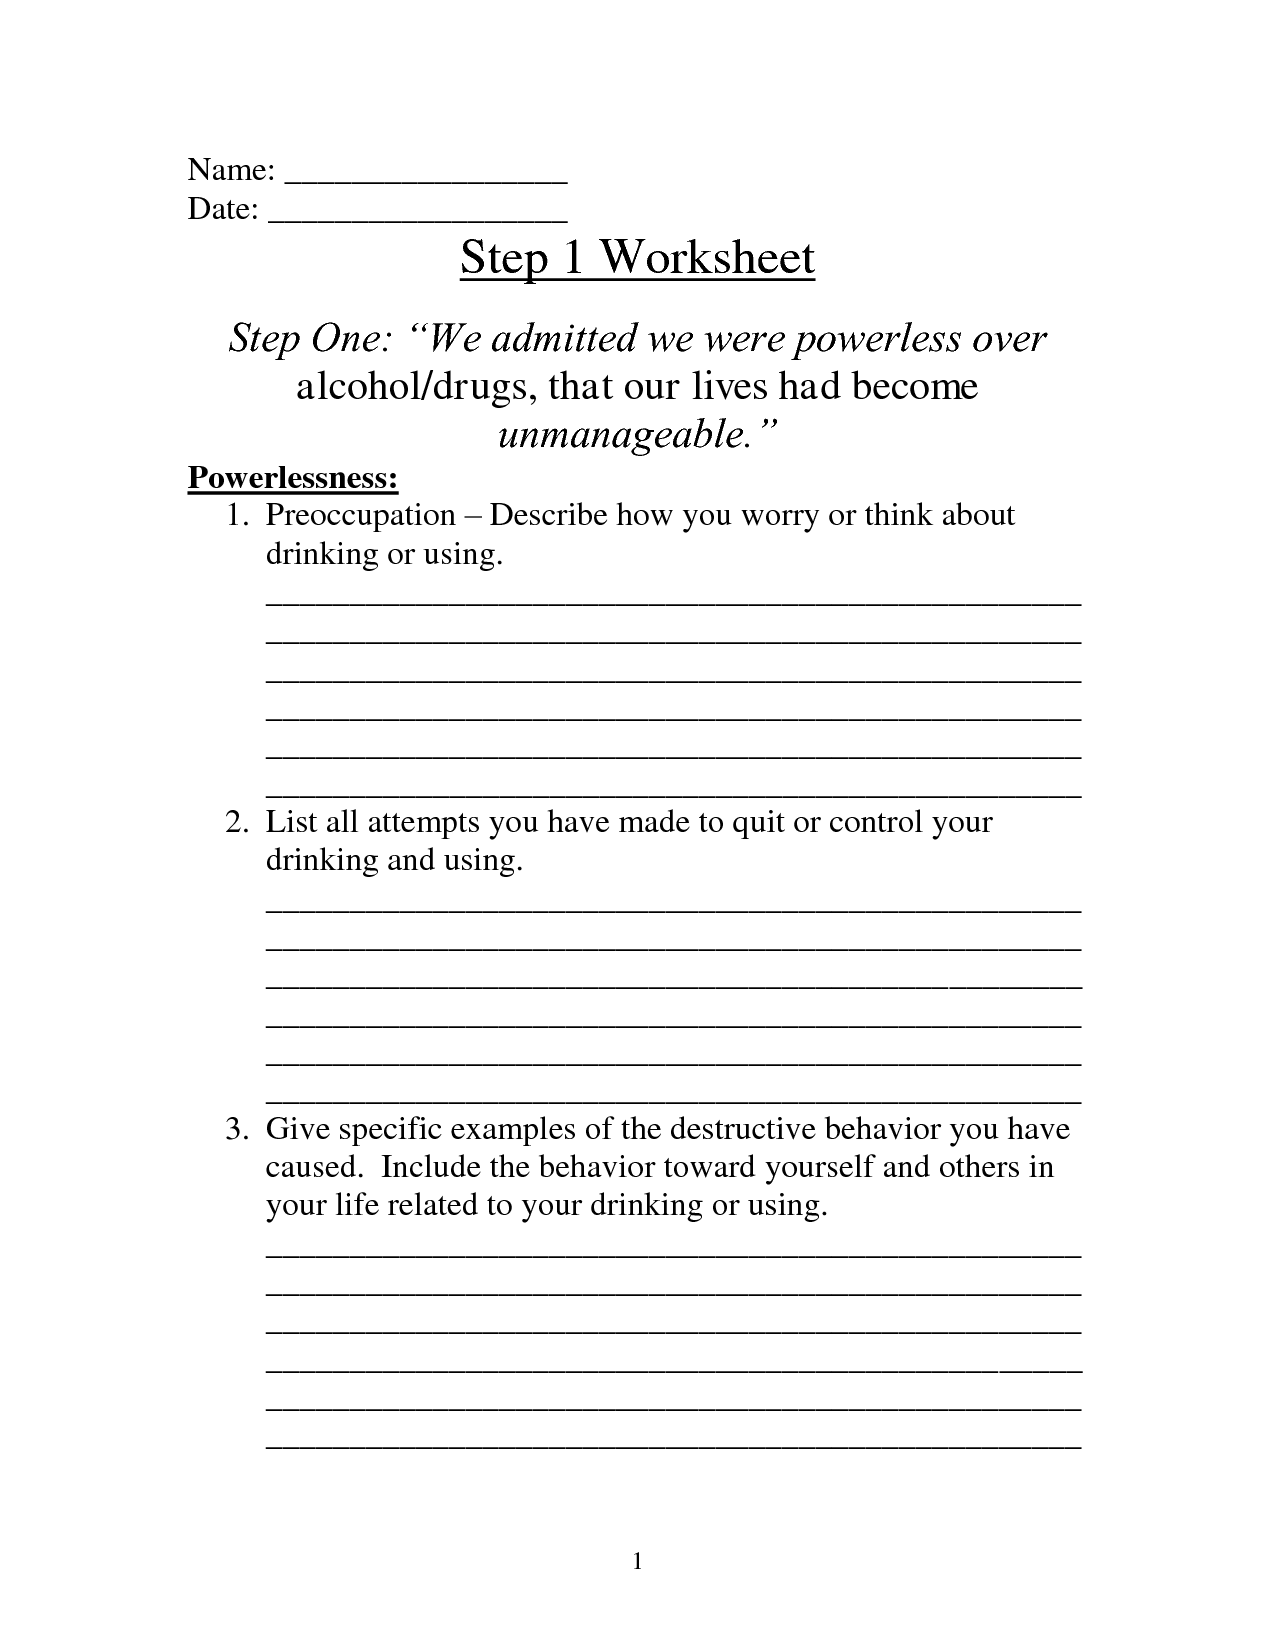 Worksheets Step 4 Aa Worksheet printable aa step 4 worksheets for all download and share free on bonlacfoods com